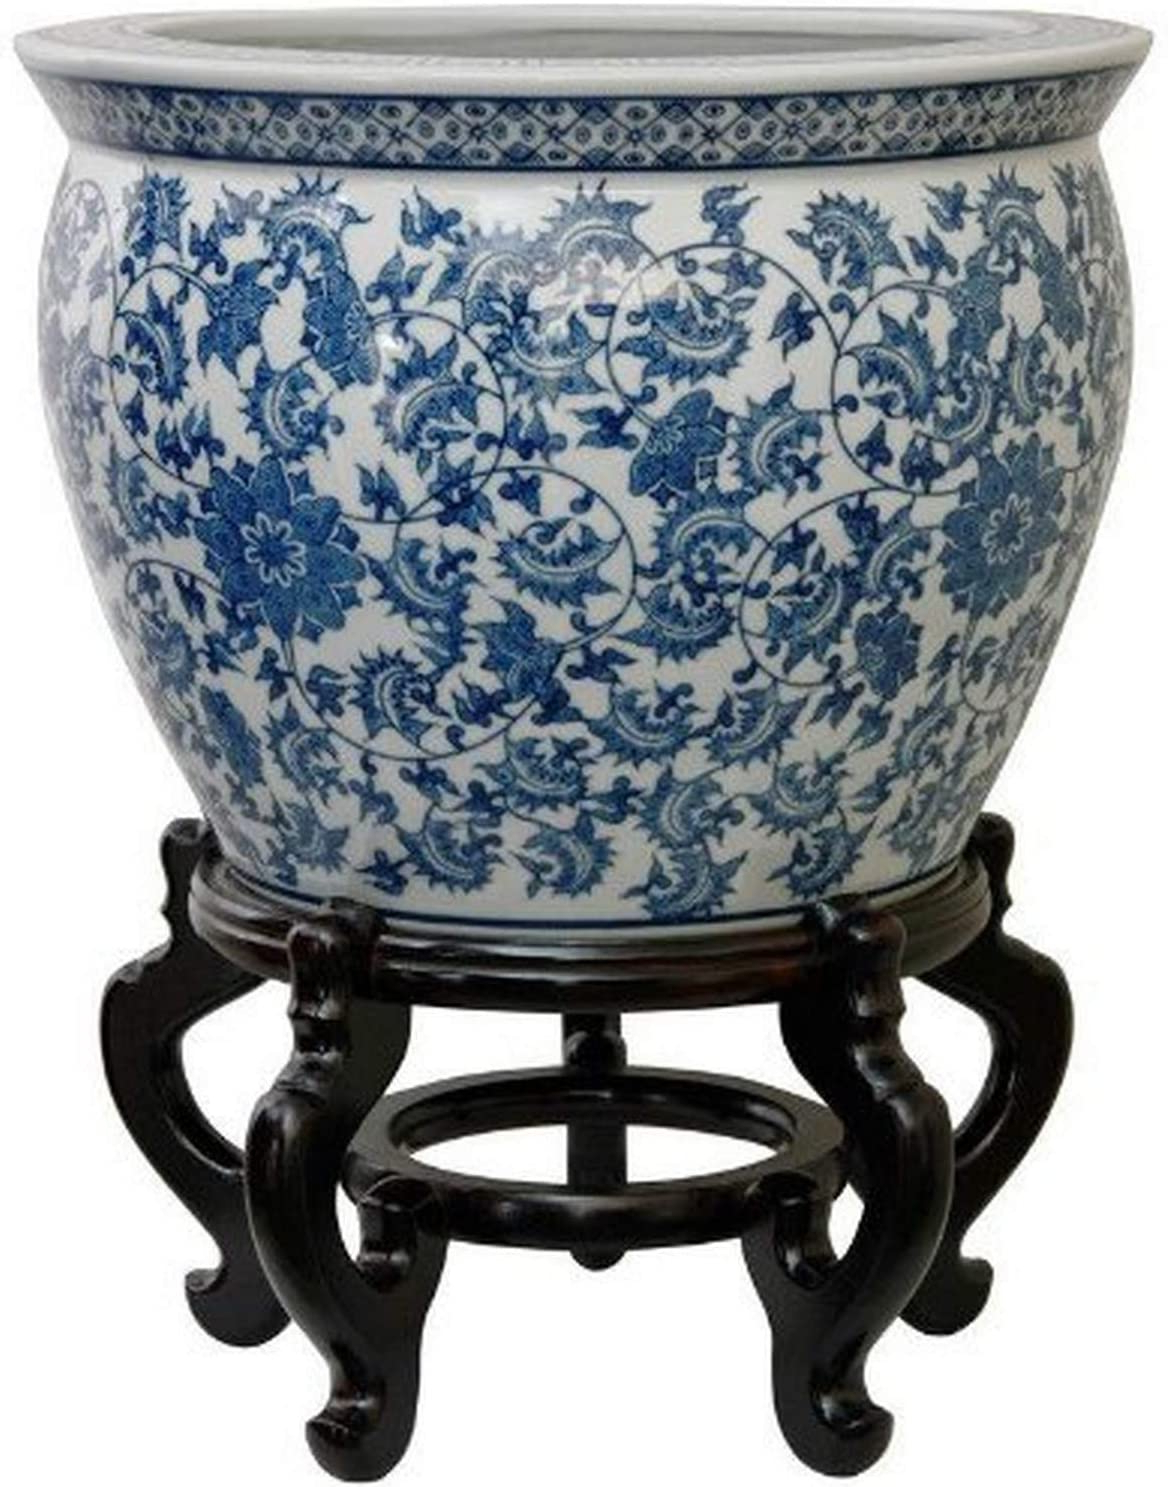 "Williar Cherry Blossom Ceramic Garden Stools Inside Recent Oriental Furniture 16"" Floral Blue & White Porcelain Fishbowl (View 22 of 30)"